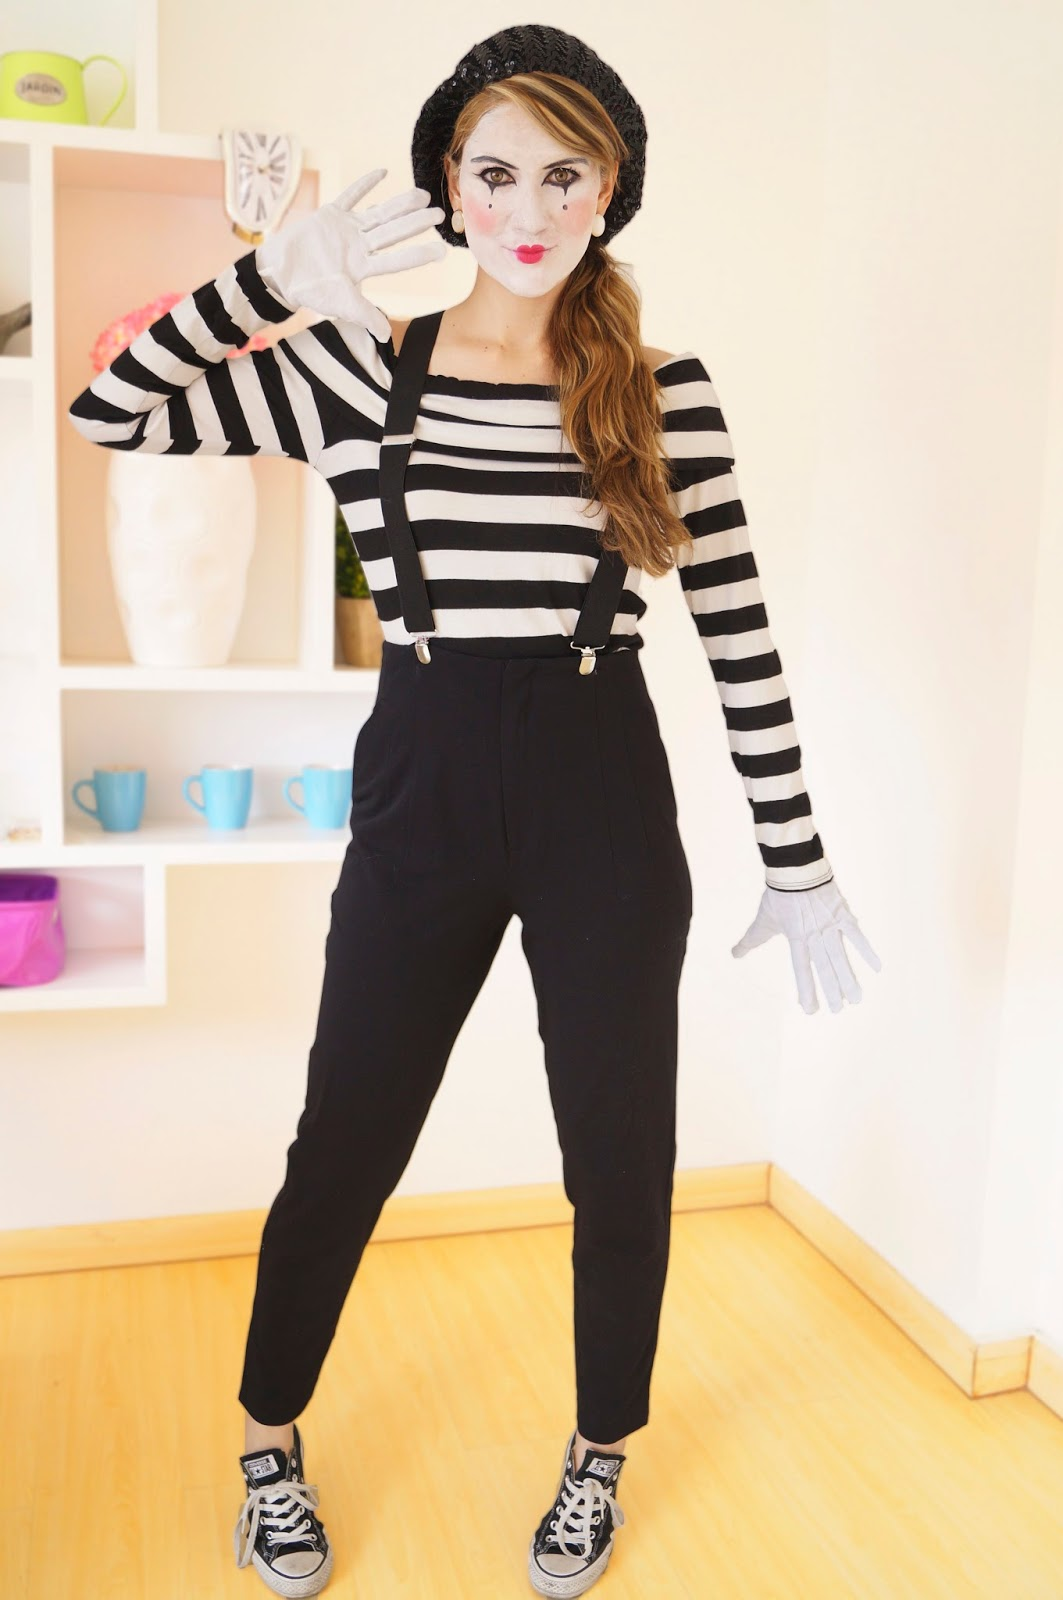 Mime Costume Tutorial